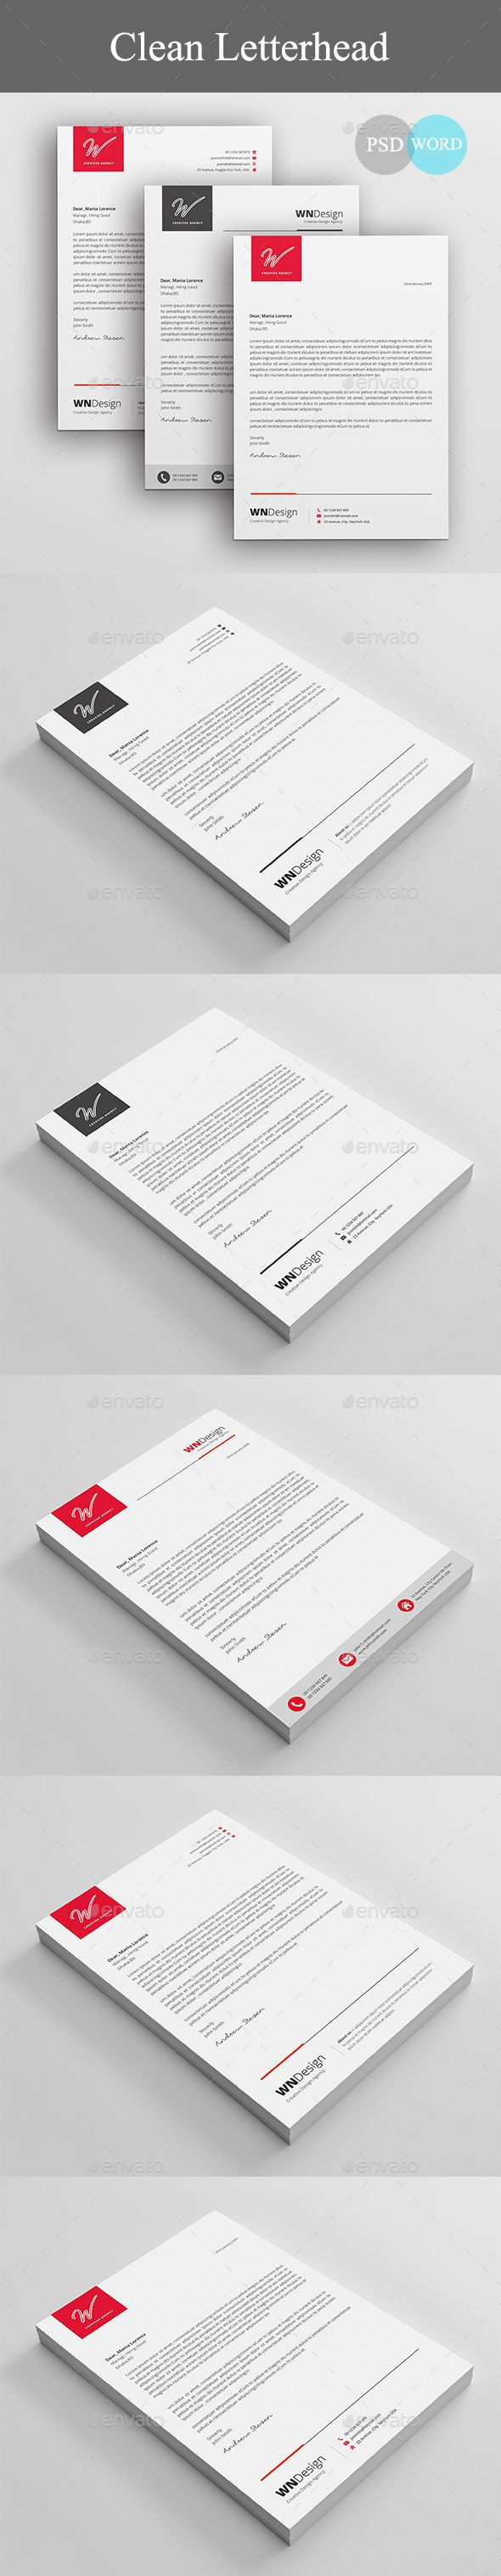 Letterhead creator free download vatozozdevelopment letterhead creator free download spiritdancerdesigns Image collections